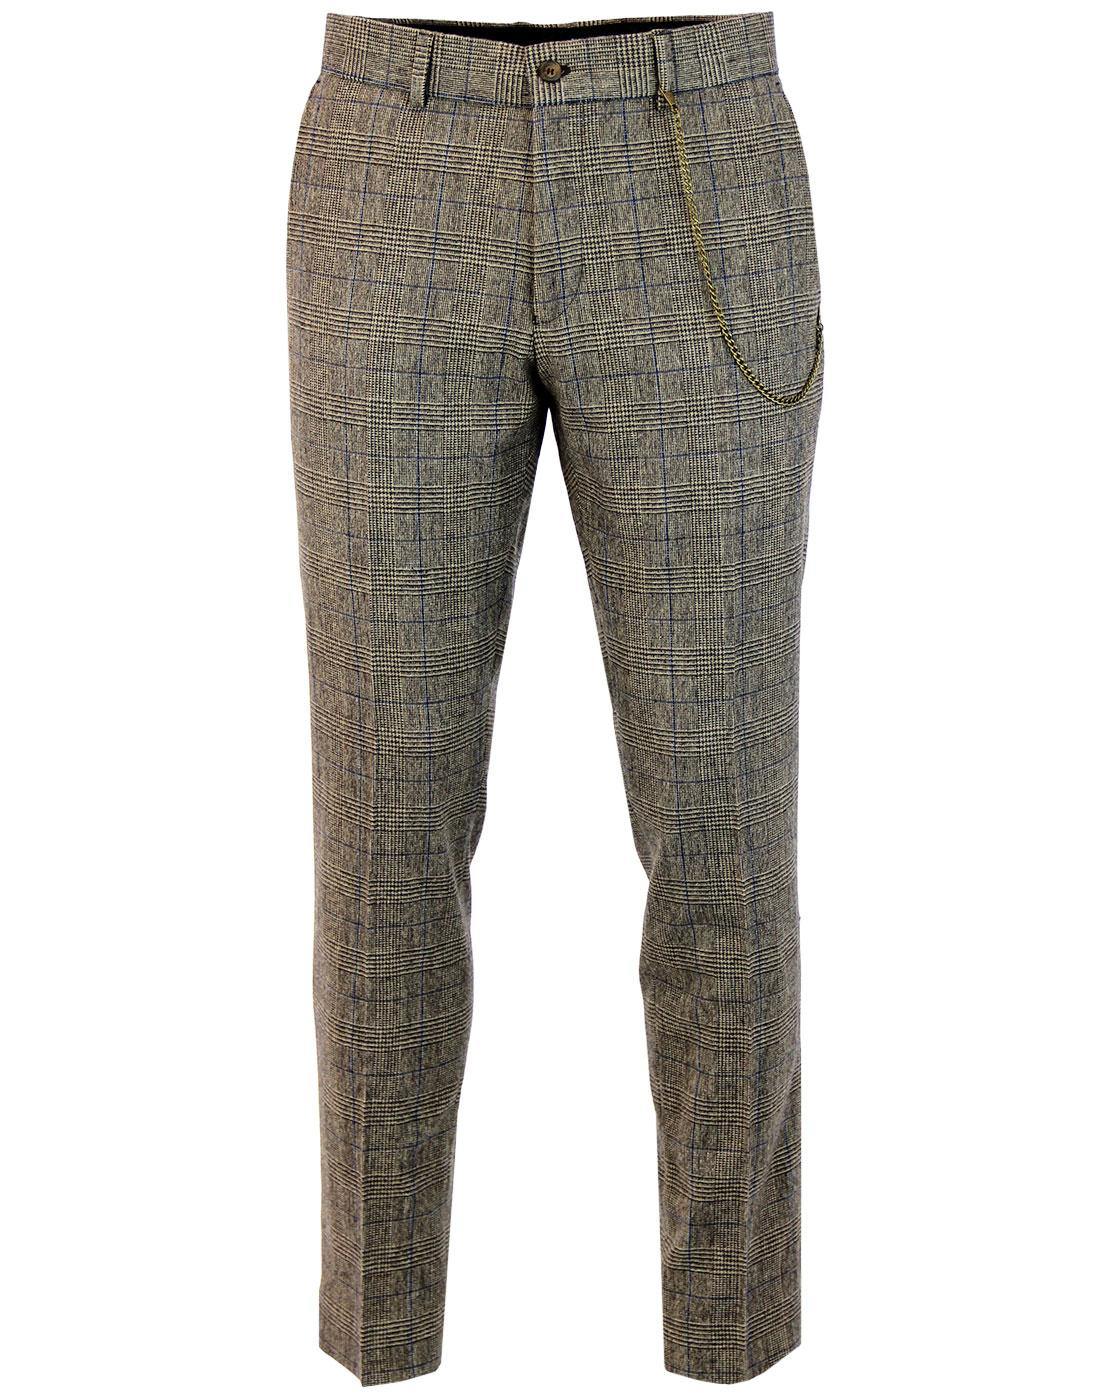 Towergate GIBSON LONDON Pow Check Suit Trousers